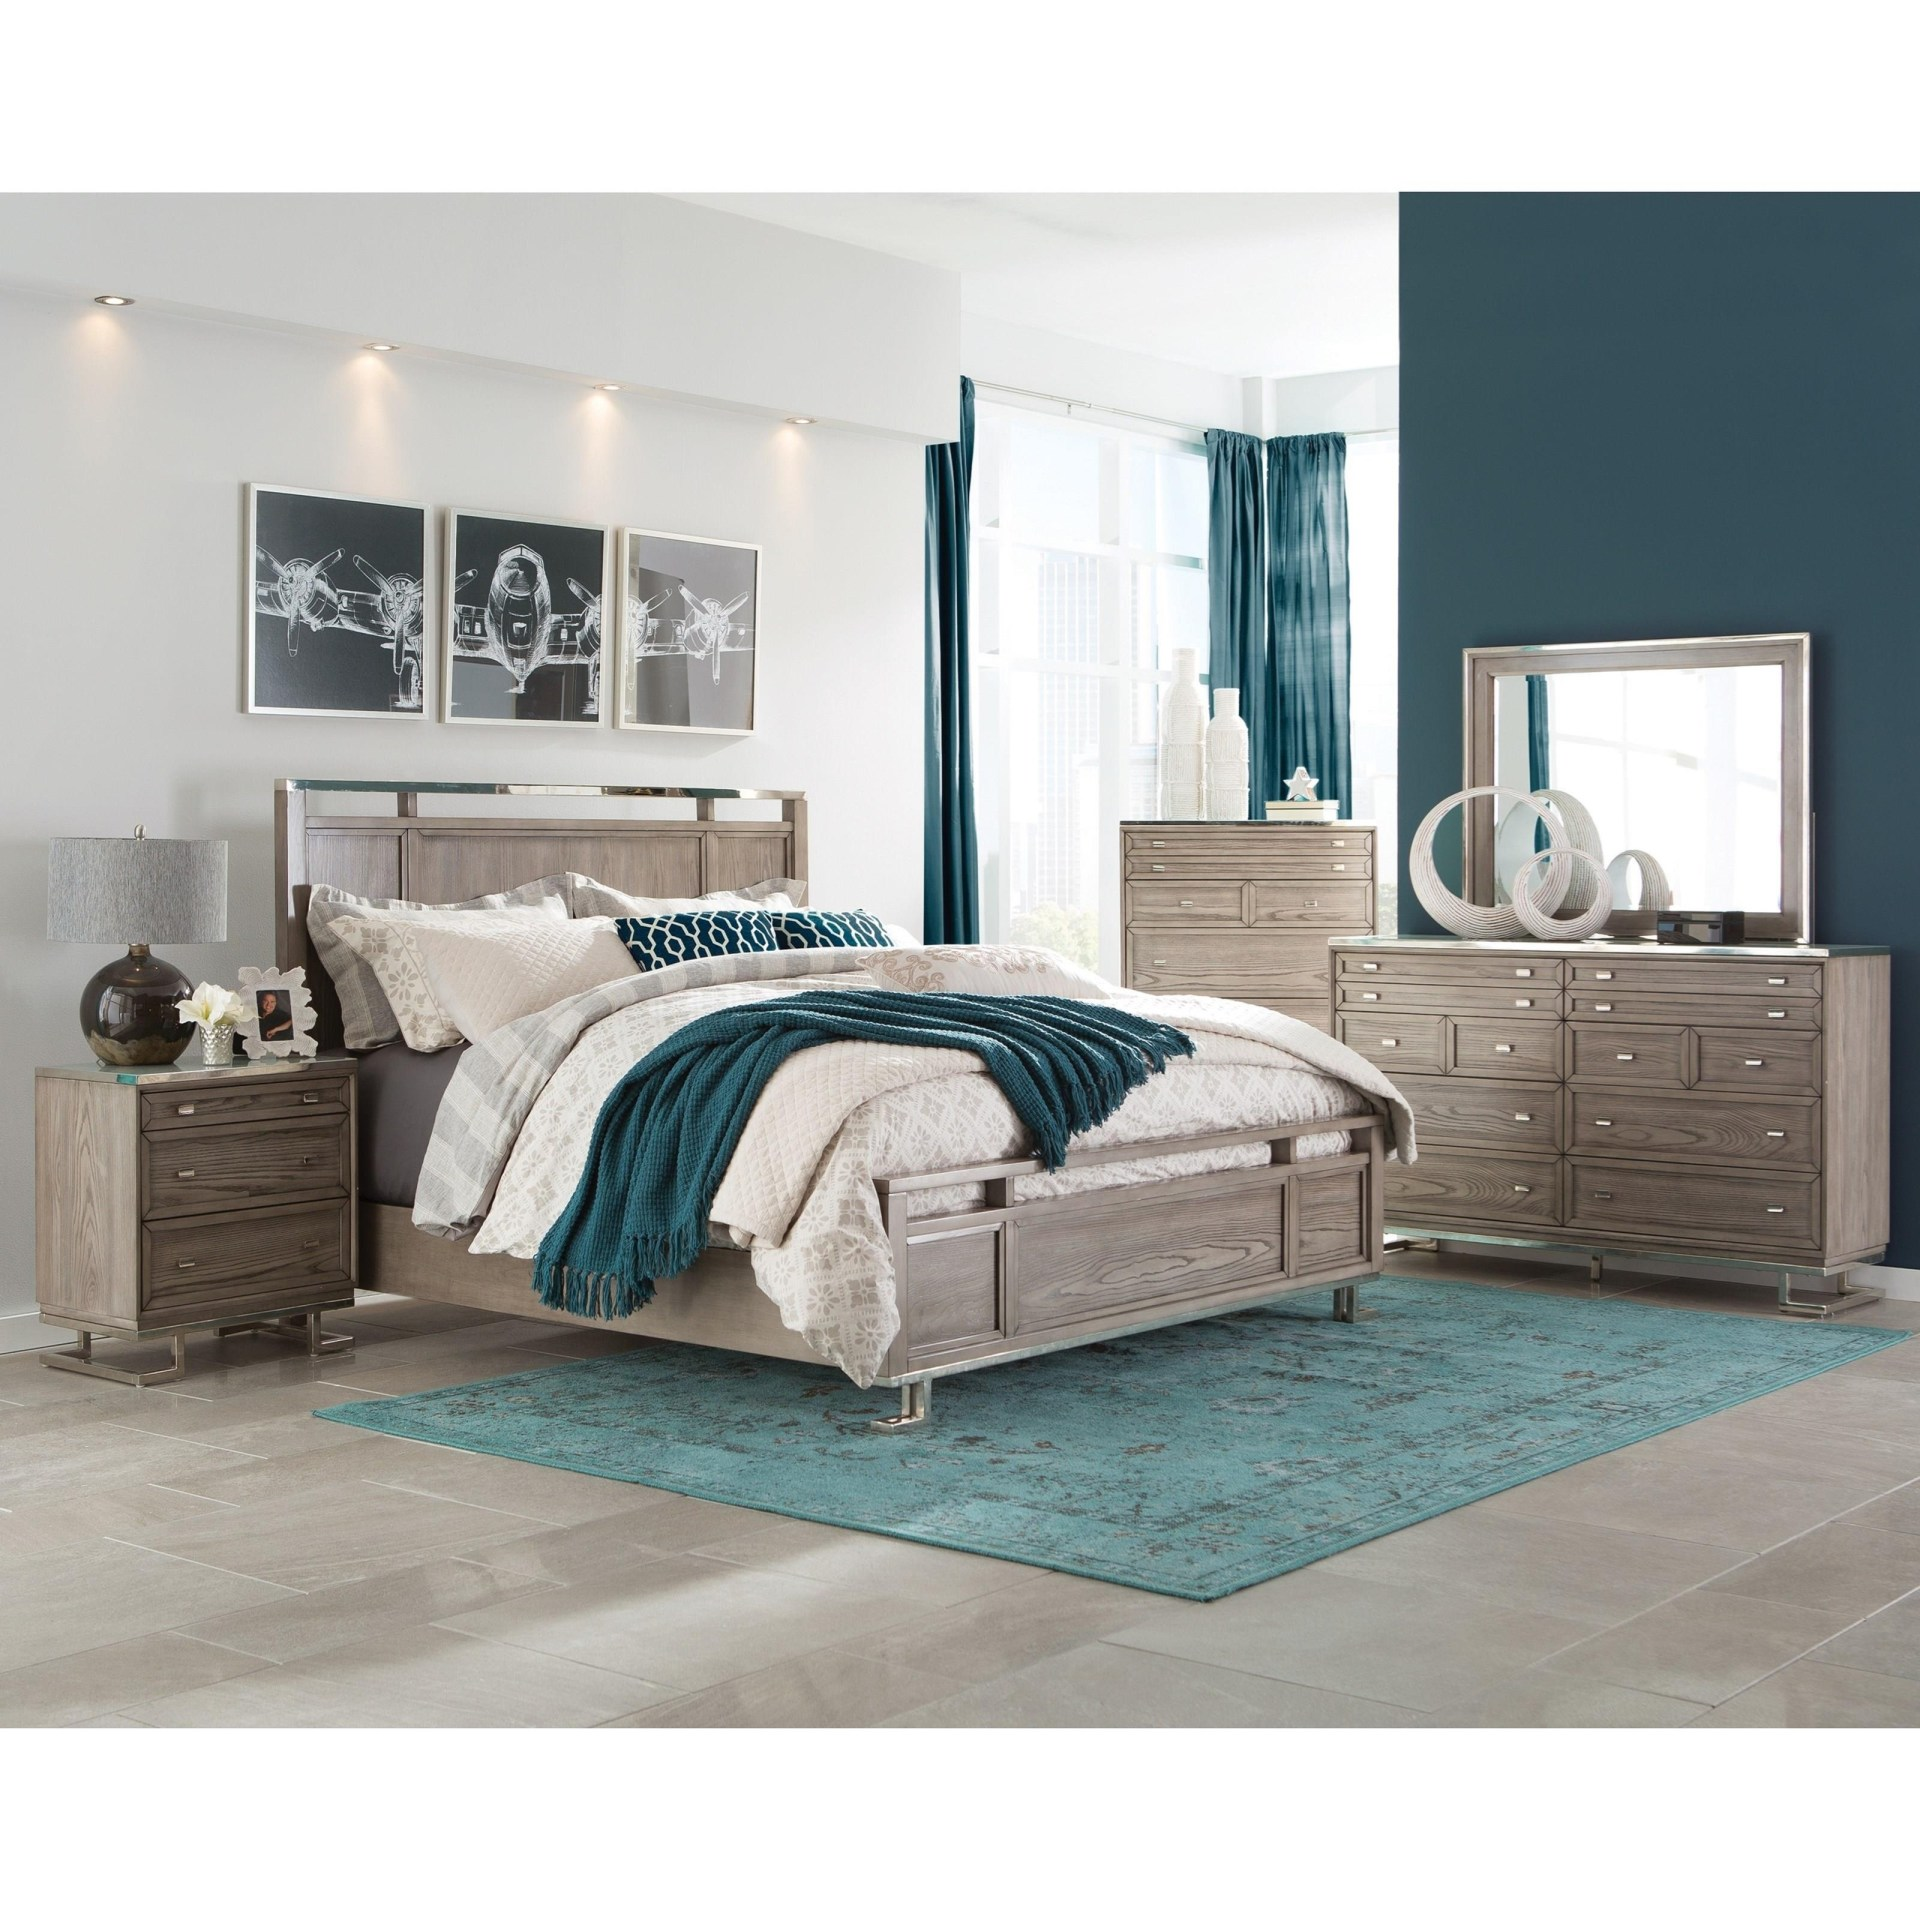 donny osmond home collection, closout bedroom, queen bed, chest of drawers, floor model special